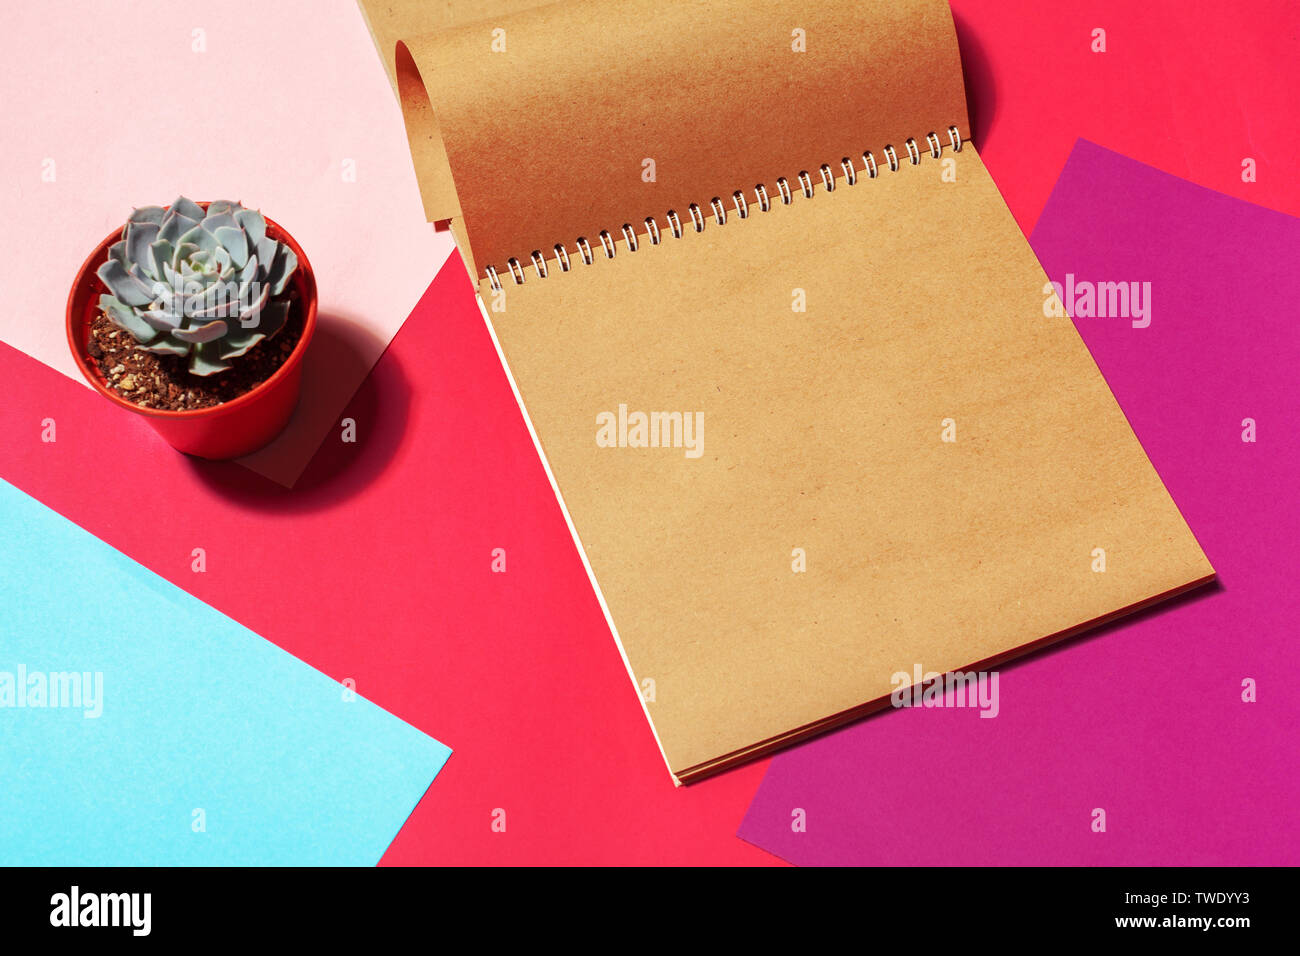 Notebook open page design on table - Stock Image